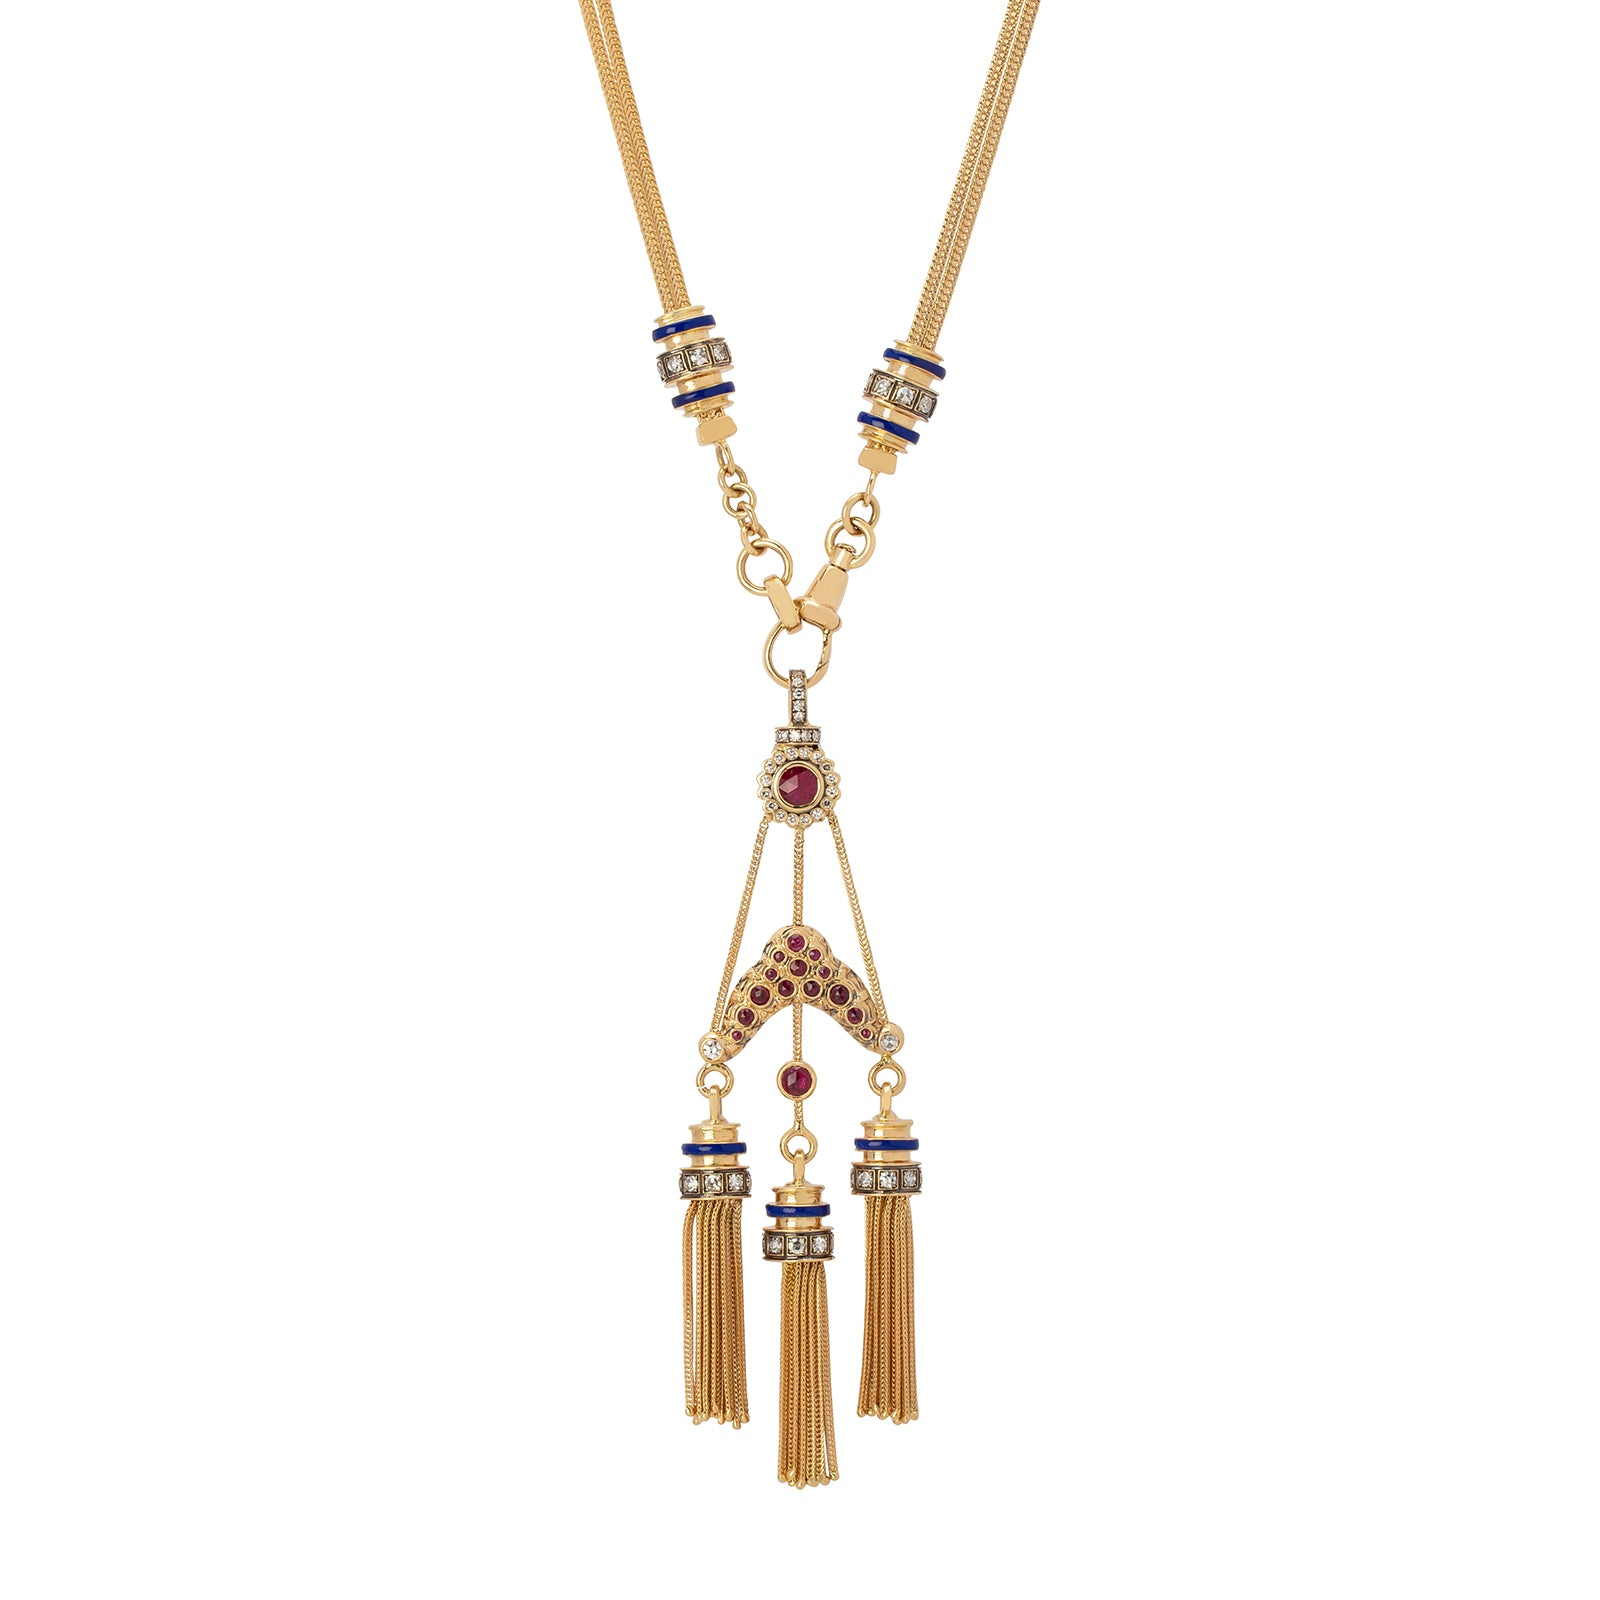 Selim Mouzannar Kastak Necklace - Diamond & Ruby - Necklaces - Broken English Jewelry